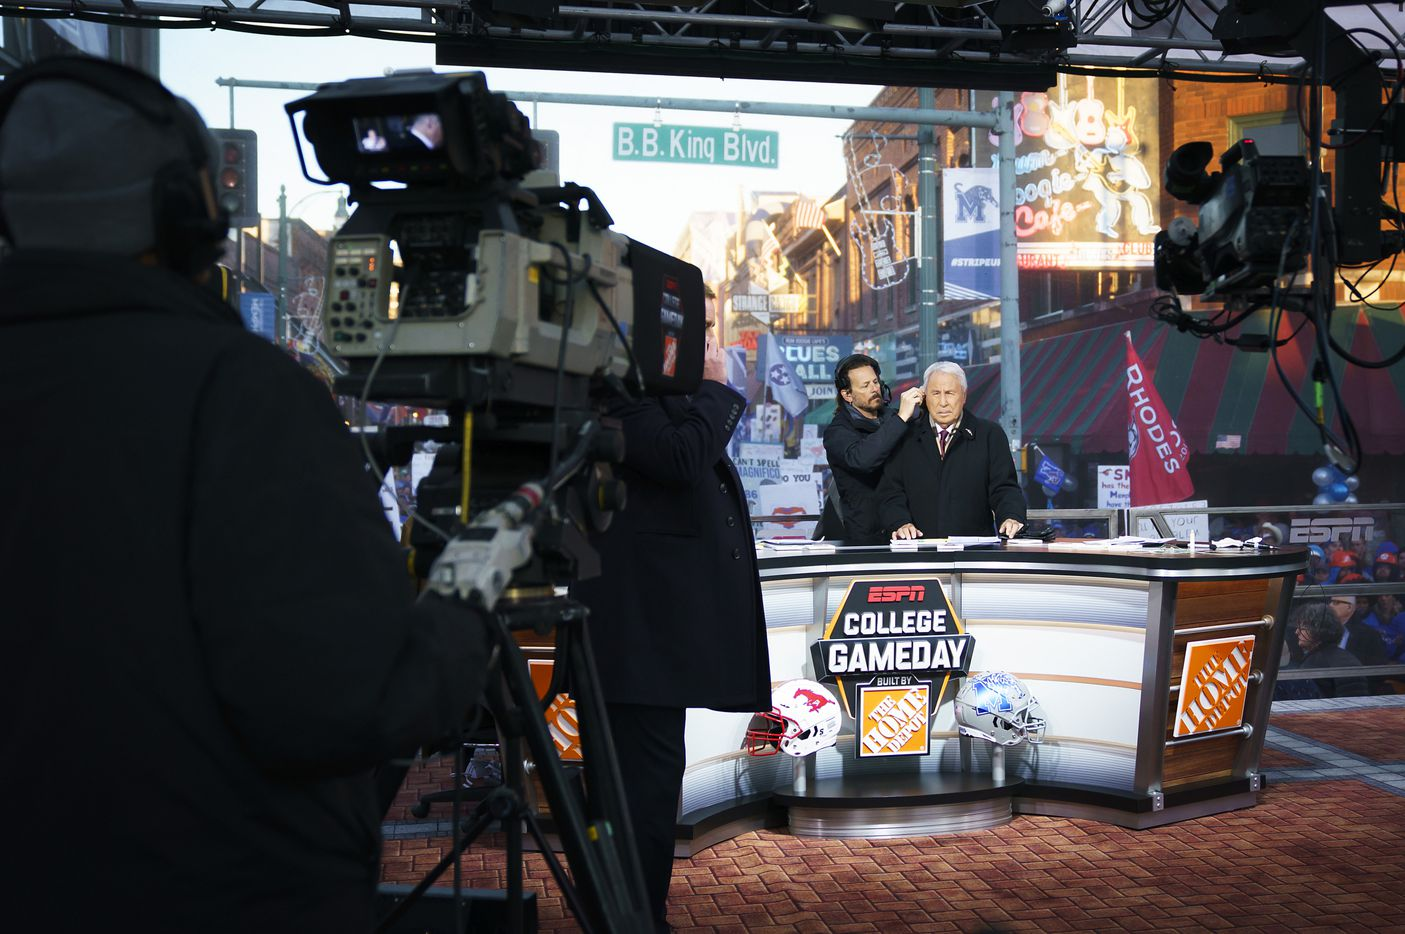 Lee Cosro prepares for the start of ESPN College GameDay before an NCAA football game  between Memphis and SMU on Saturday, Nov. 2, 2019, in Memphis, Tenn.